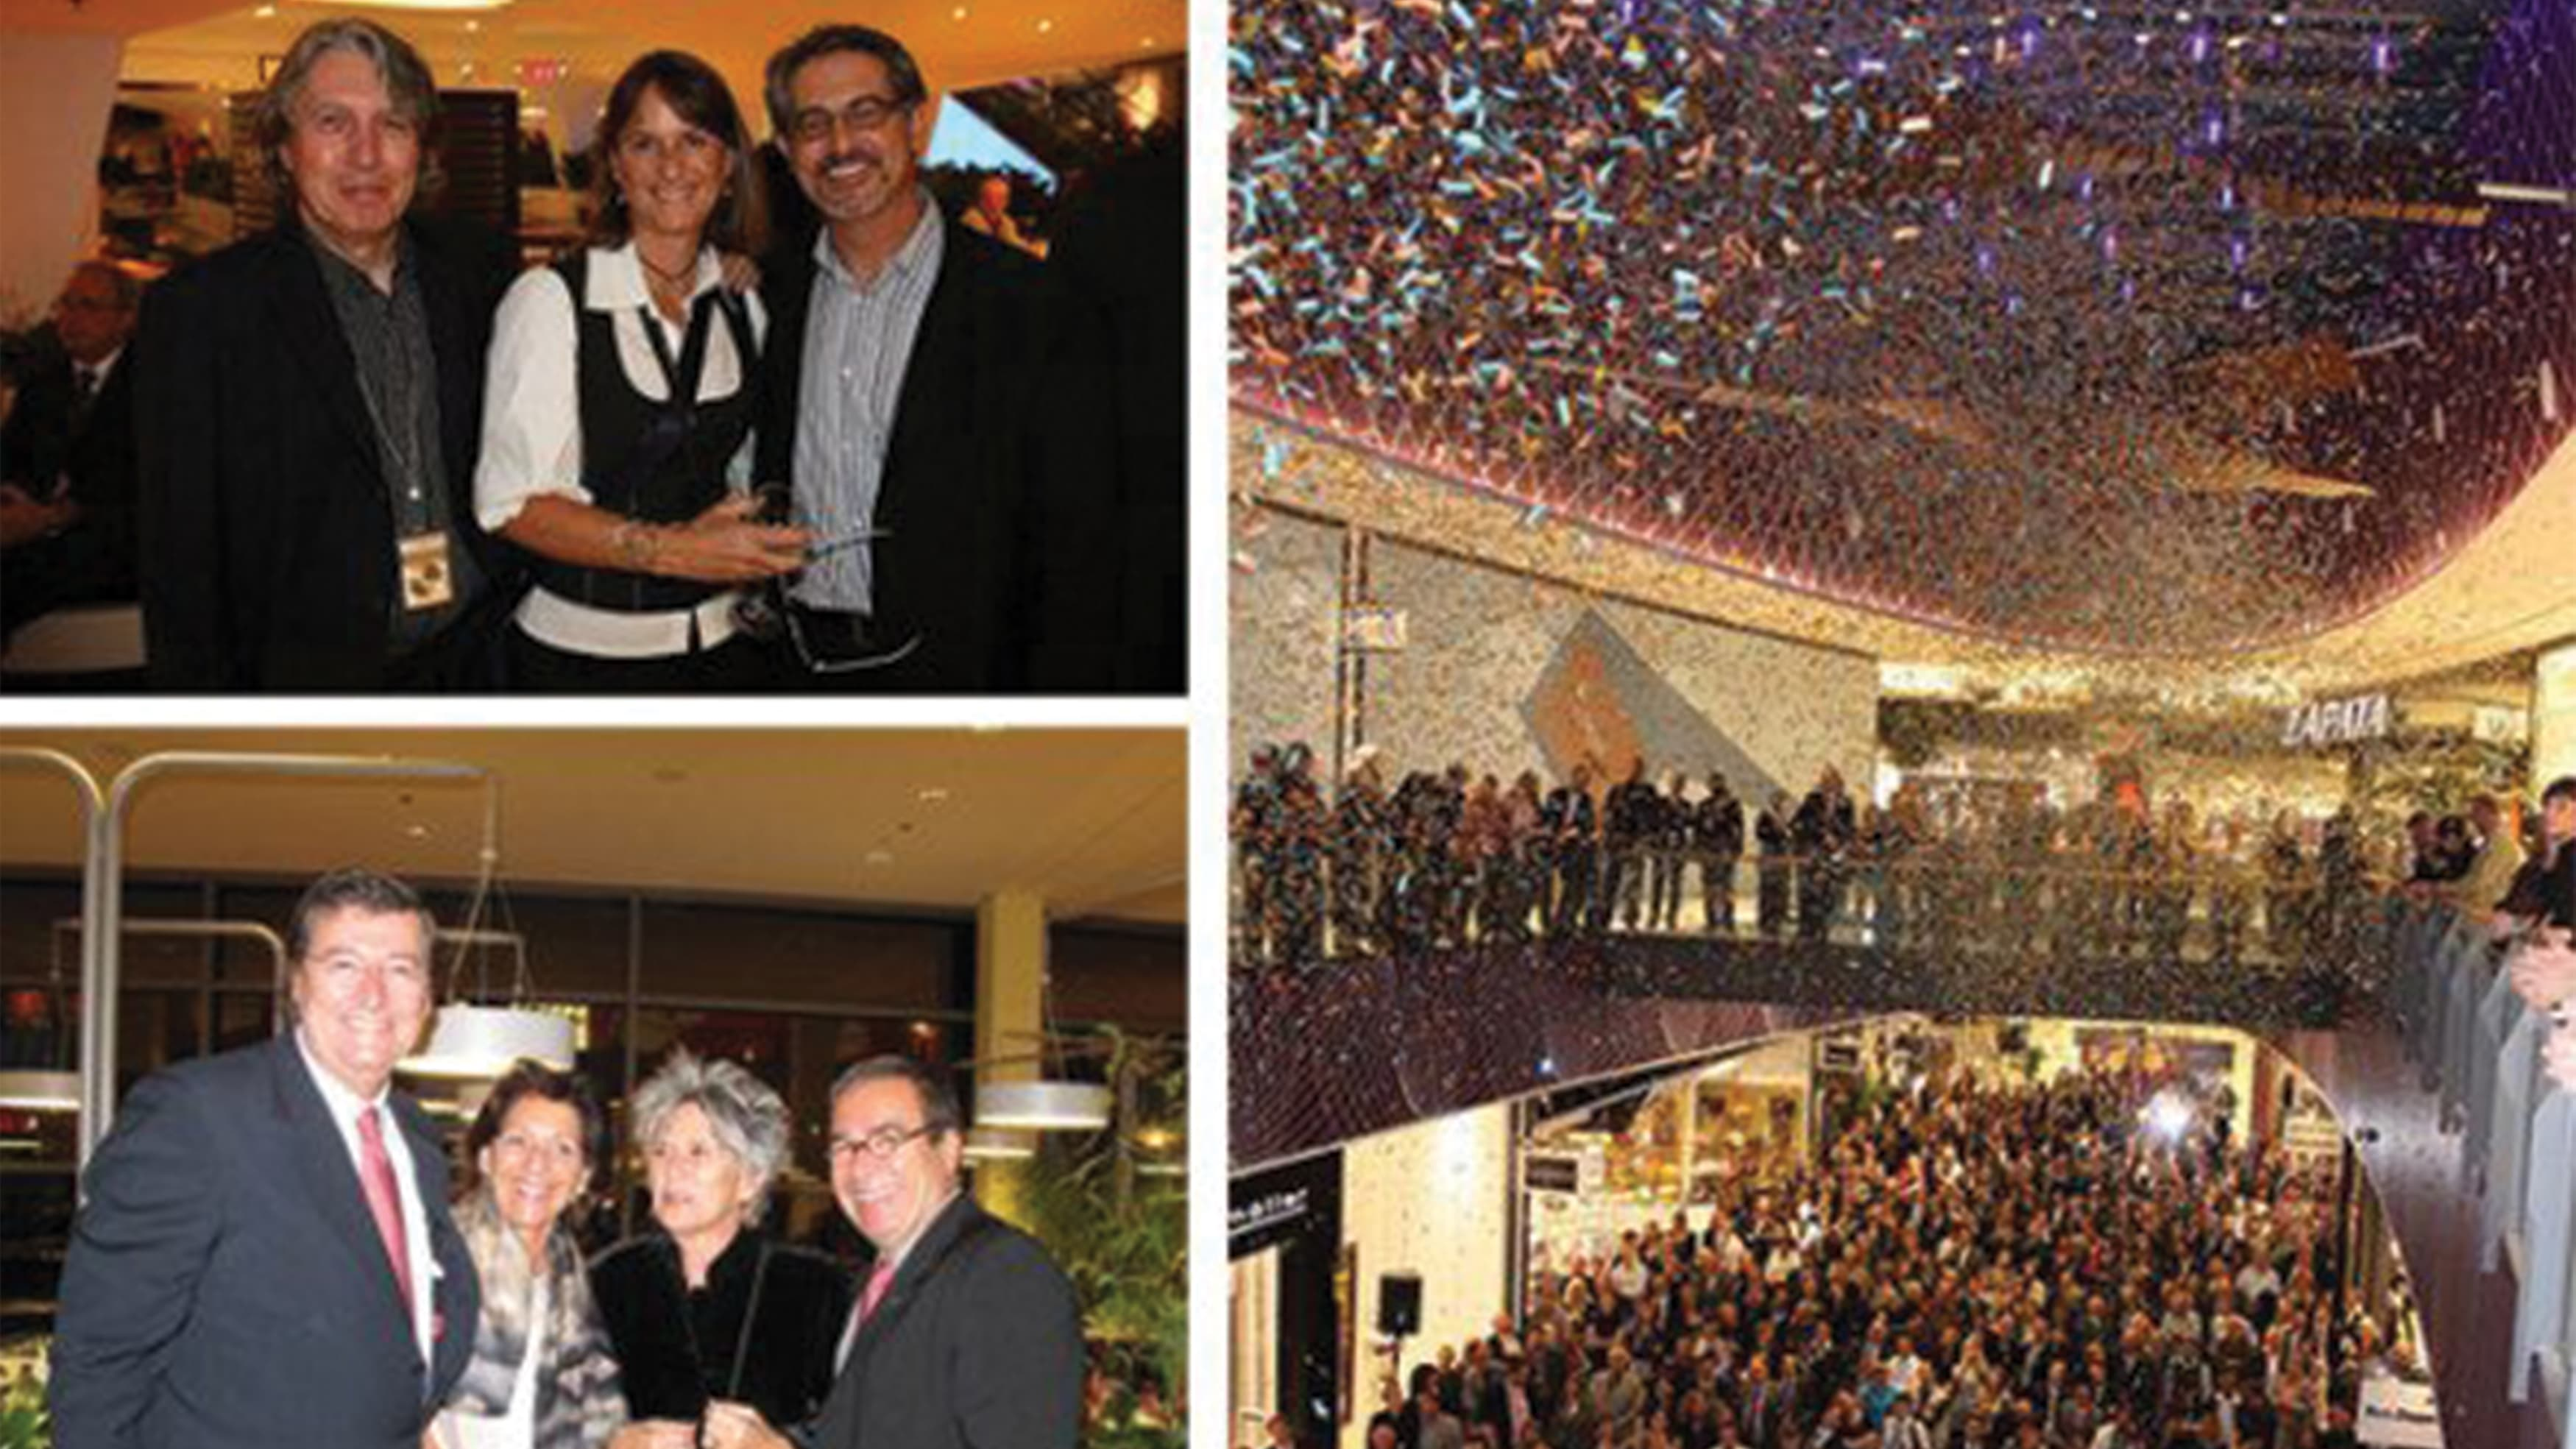 Collage of images from the opening night at Loop 5 in Germany.